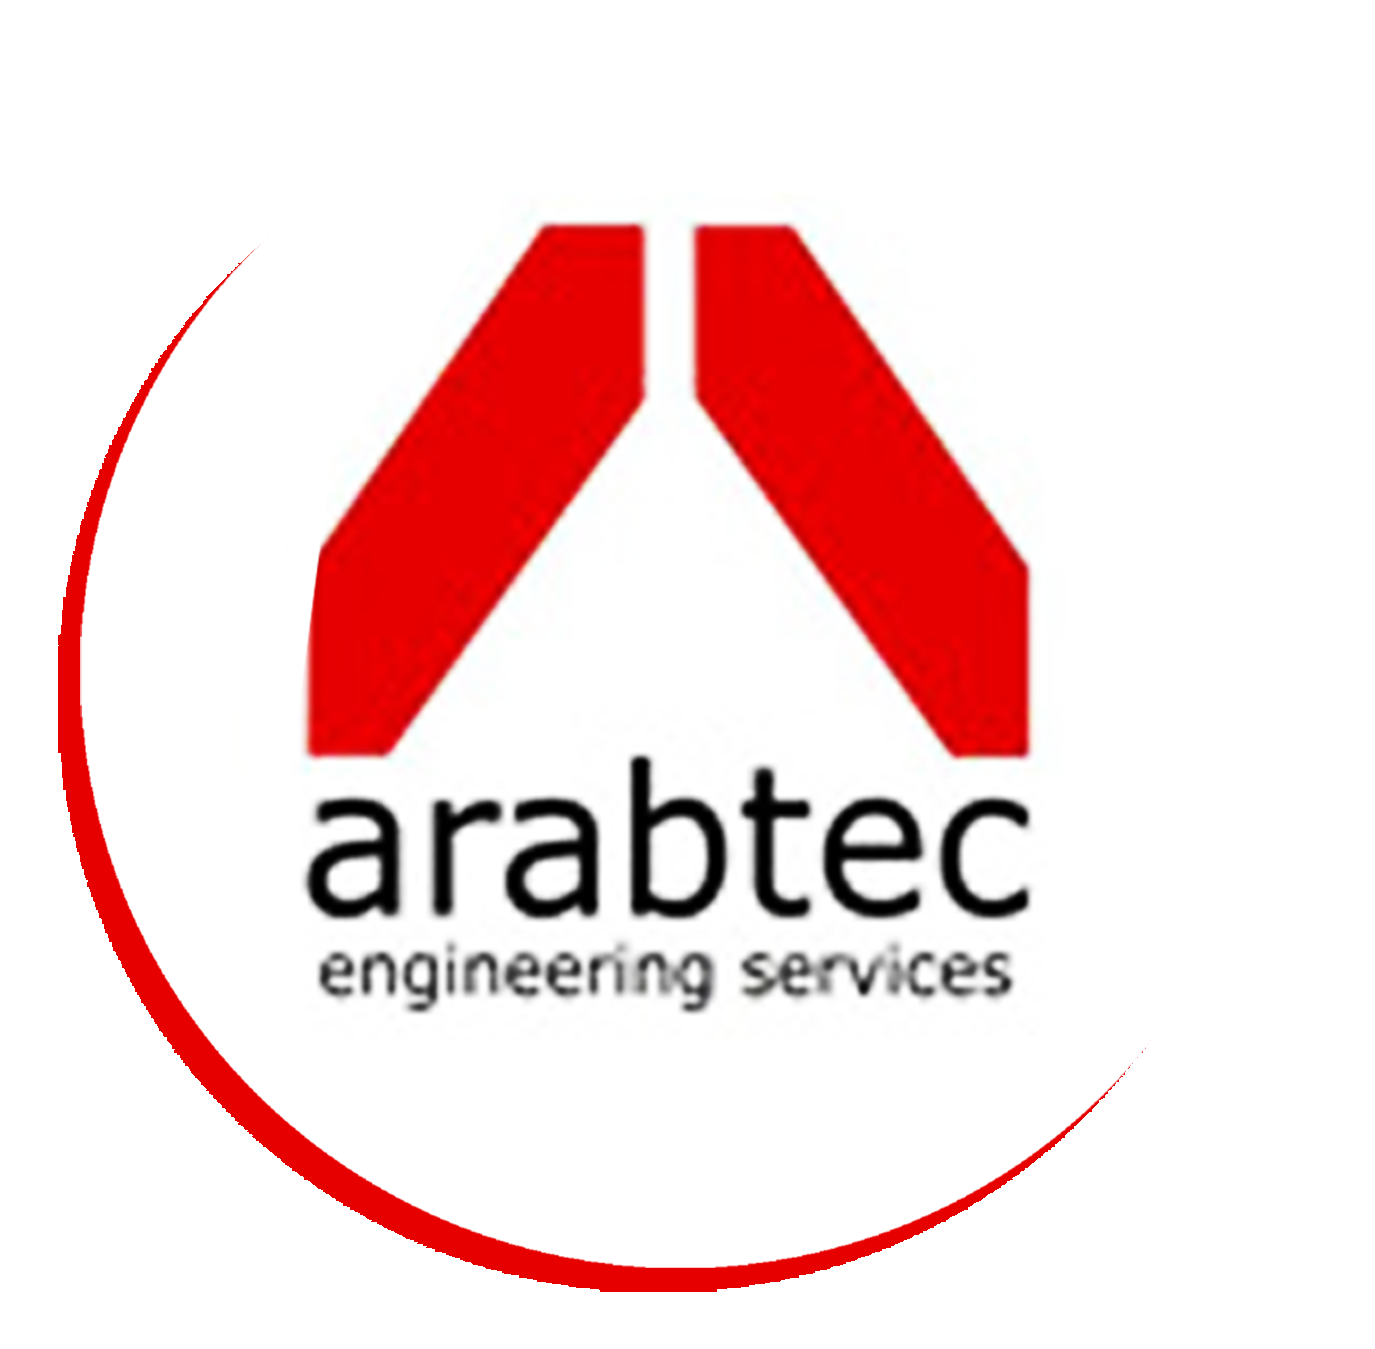 Arabtec Engineering Services